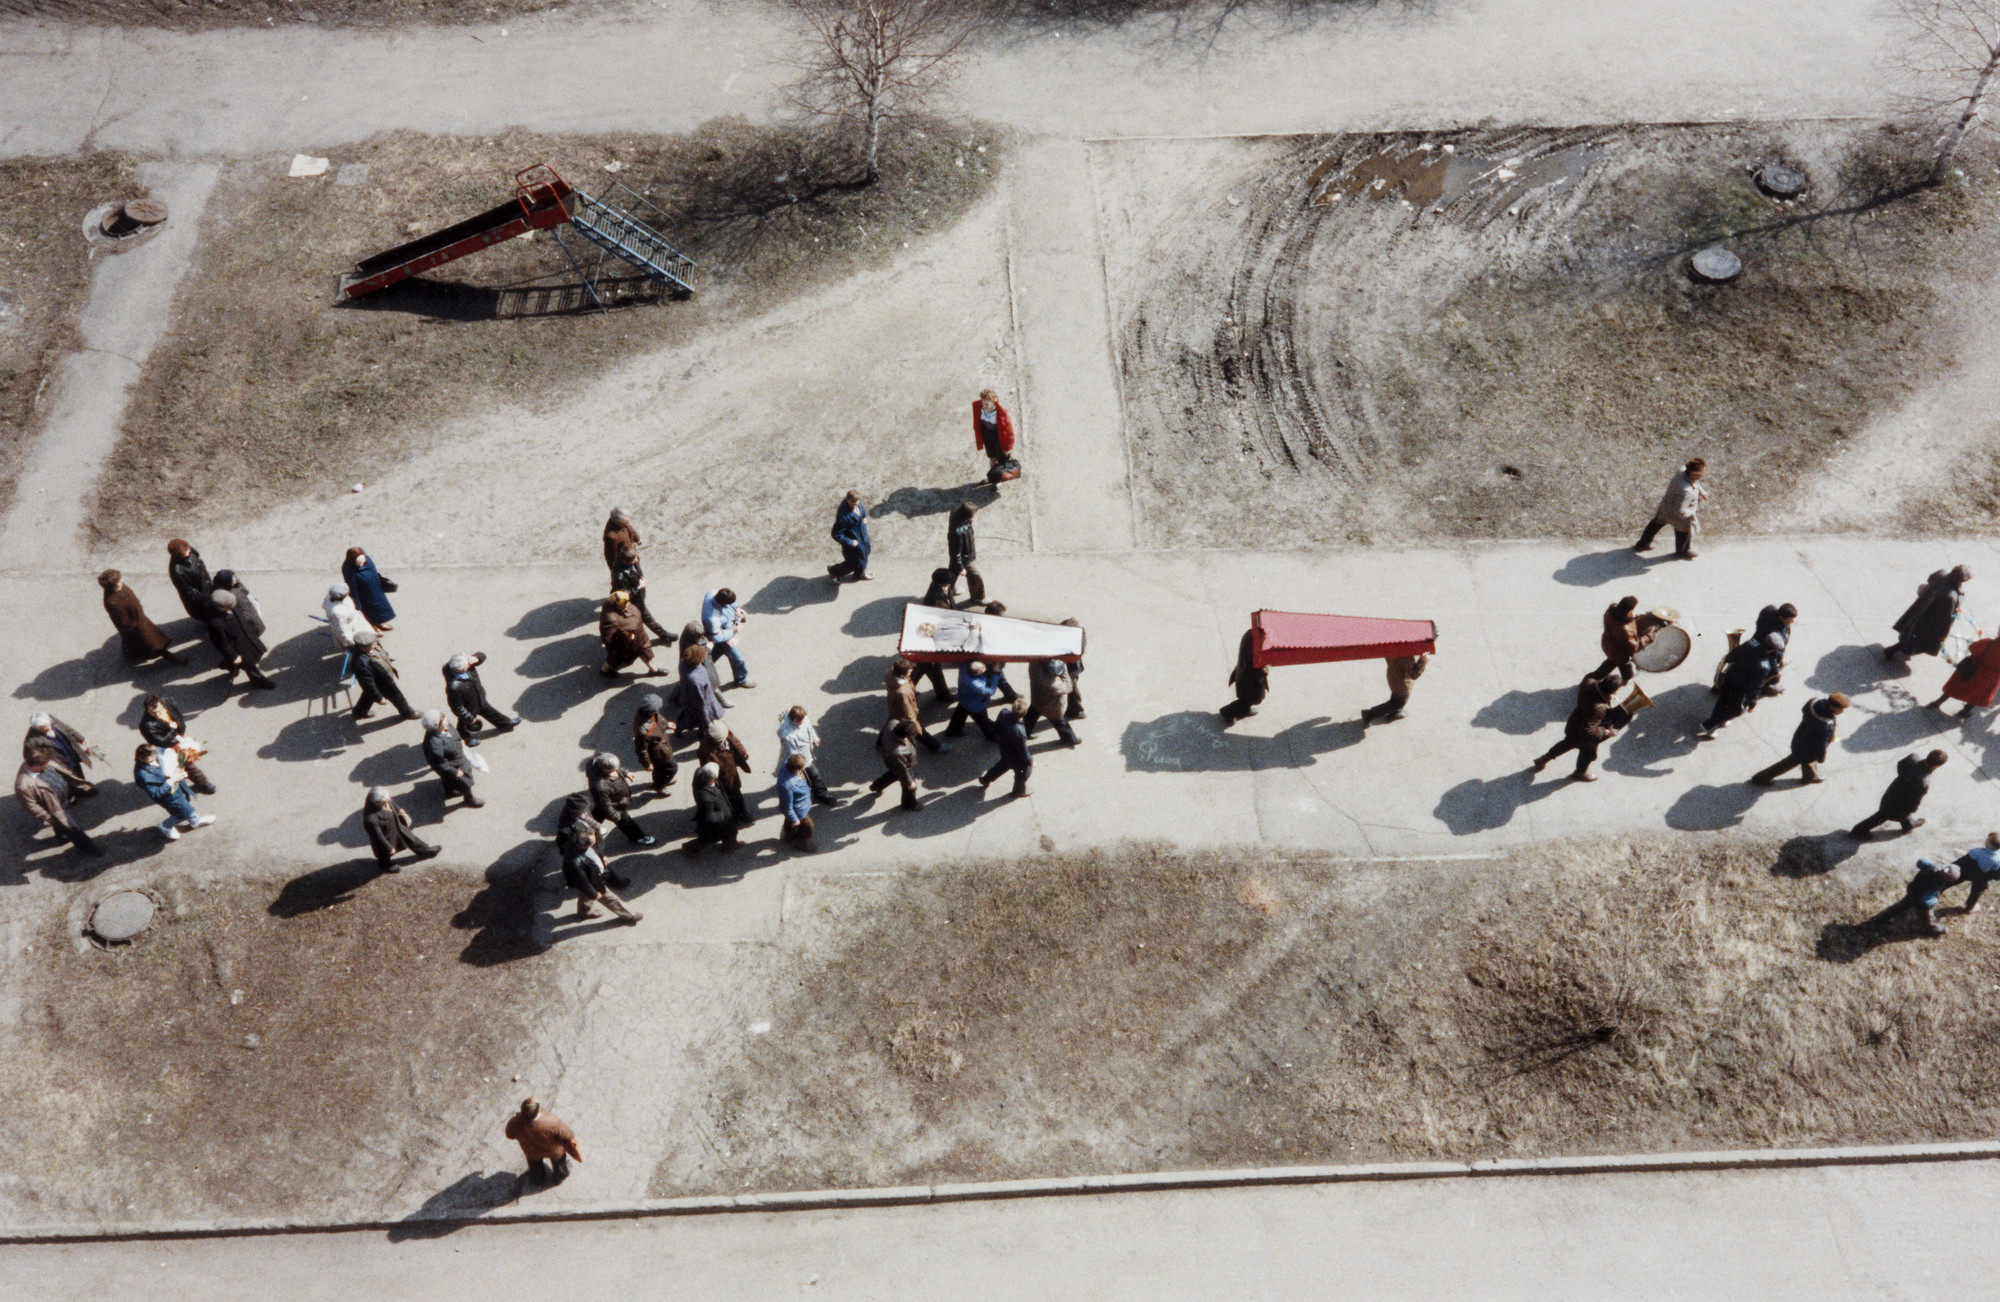 Bertien van Manen. Novokuznetsk (coffin from above). 1991